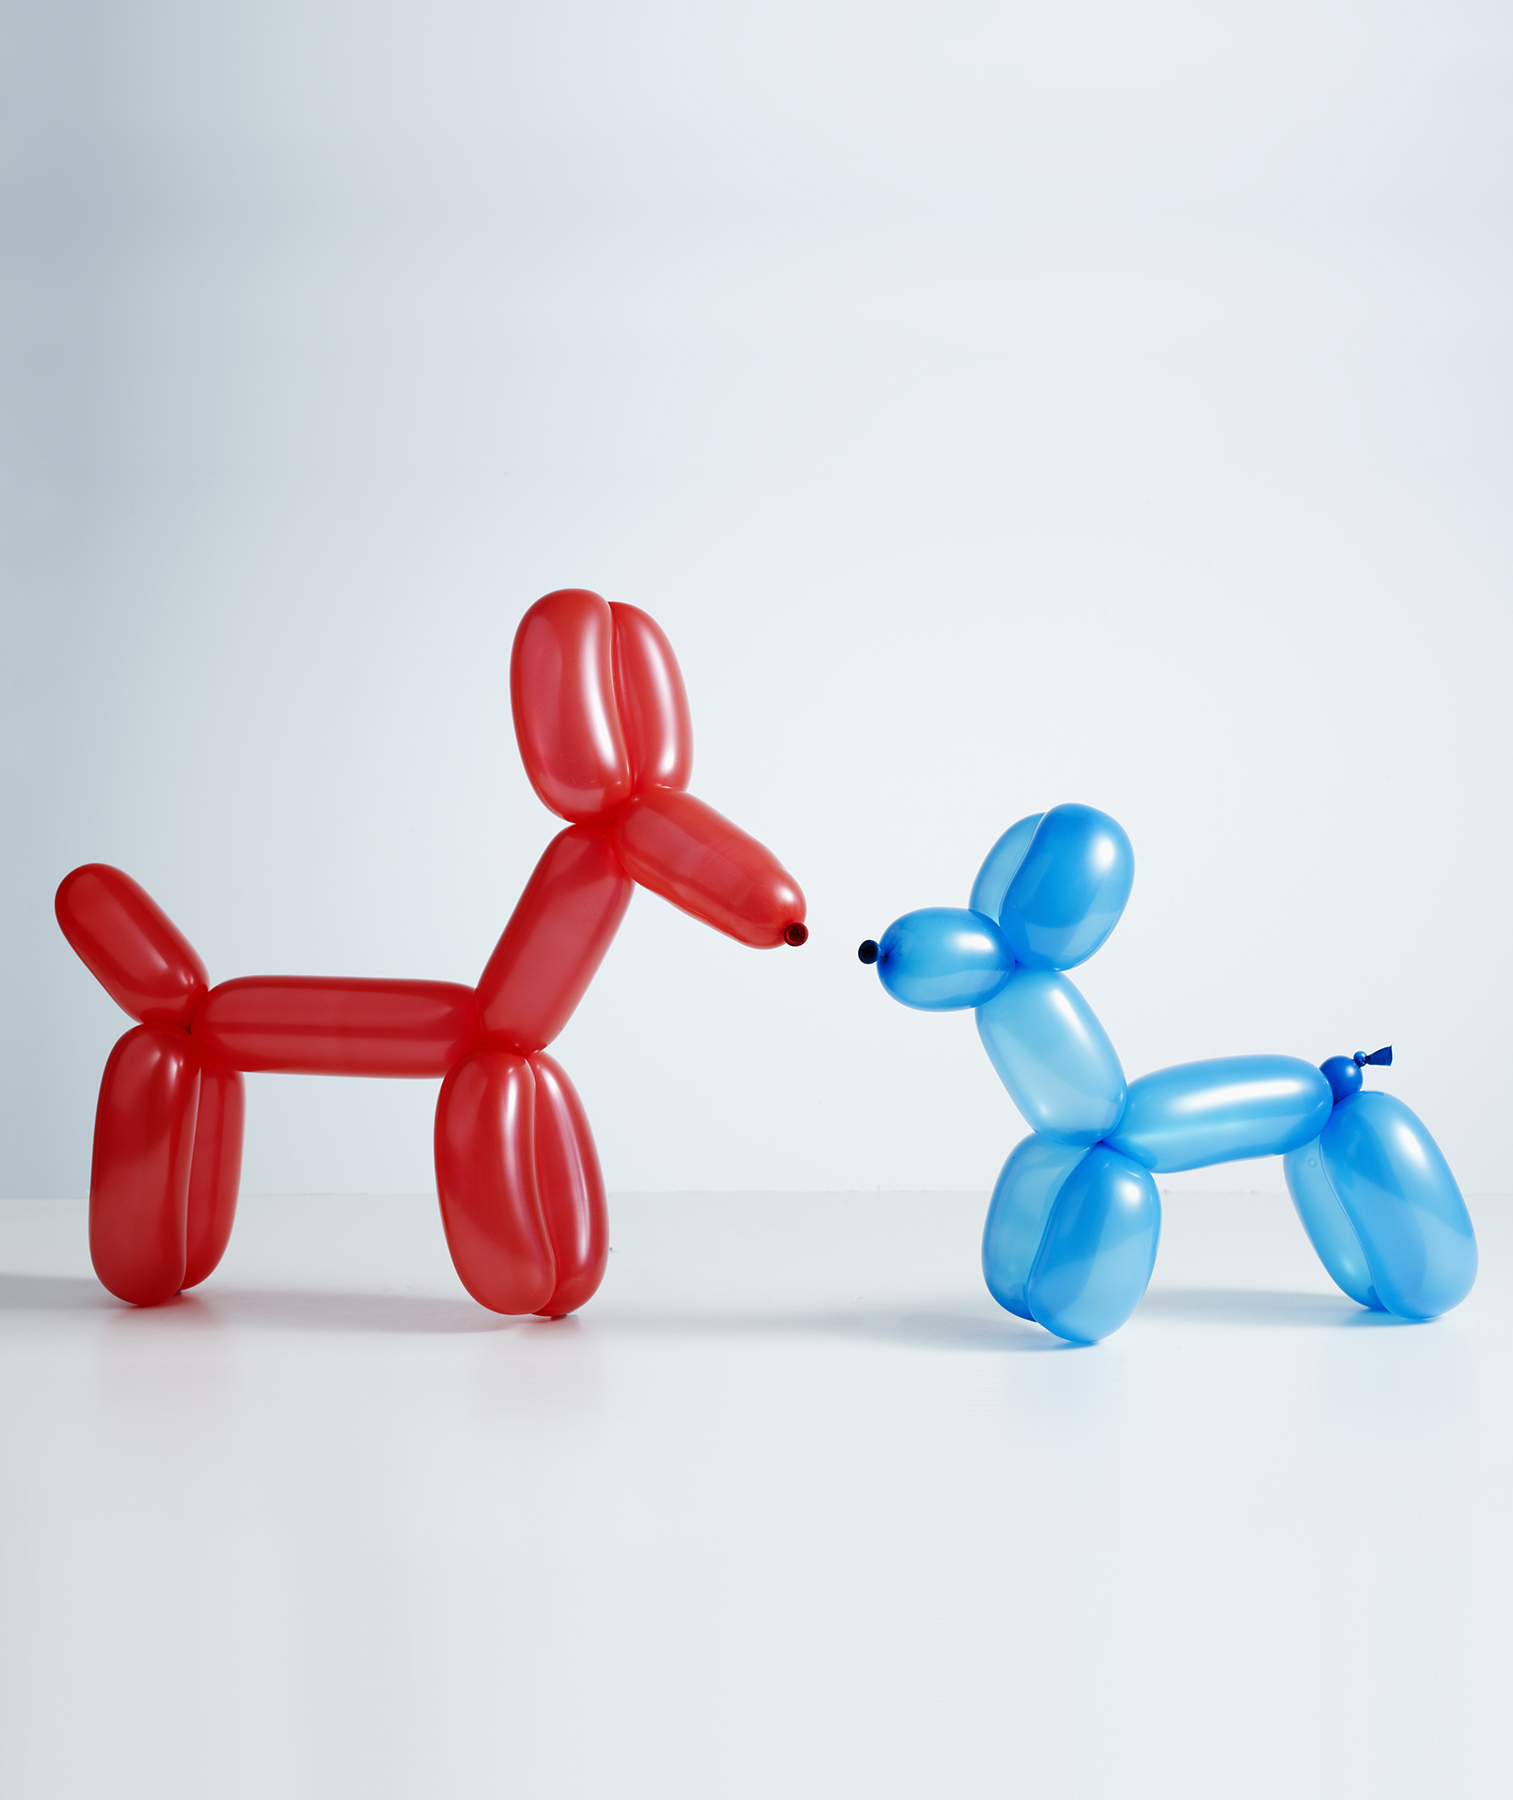 Red and blue balloon animals